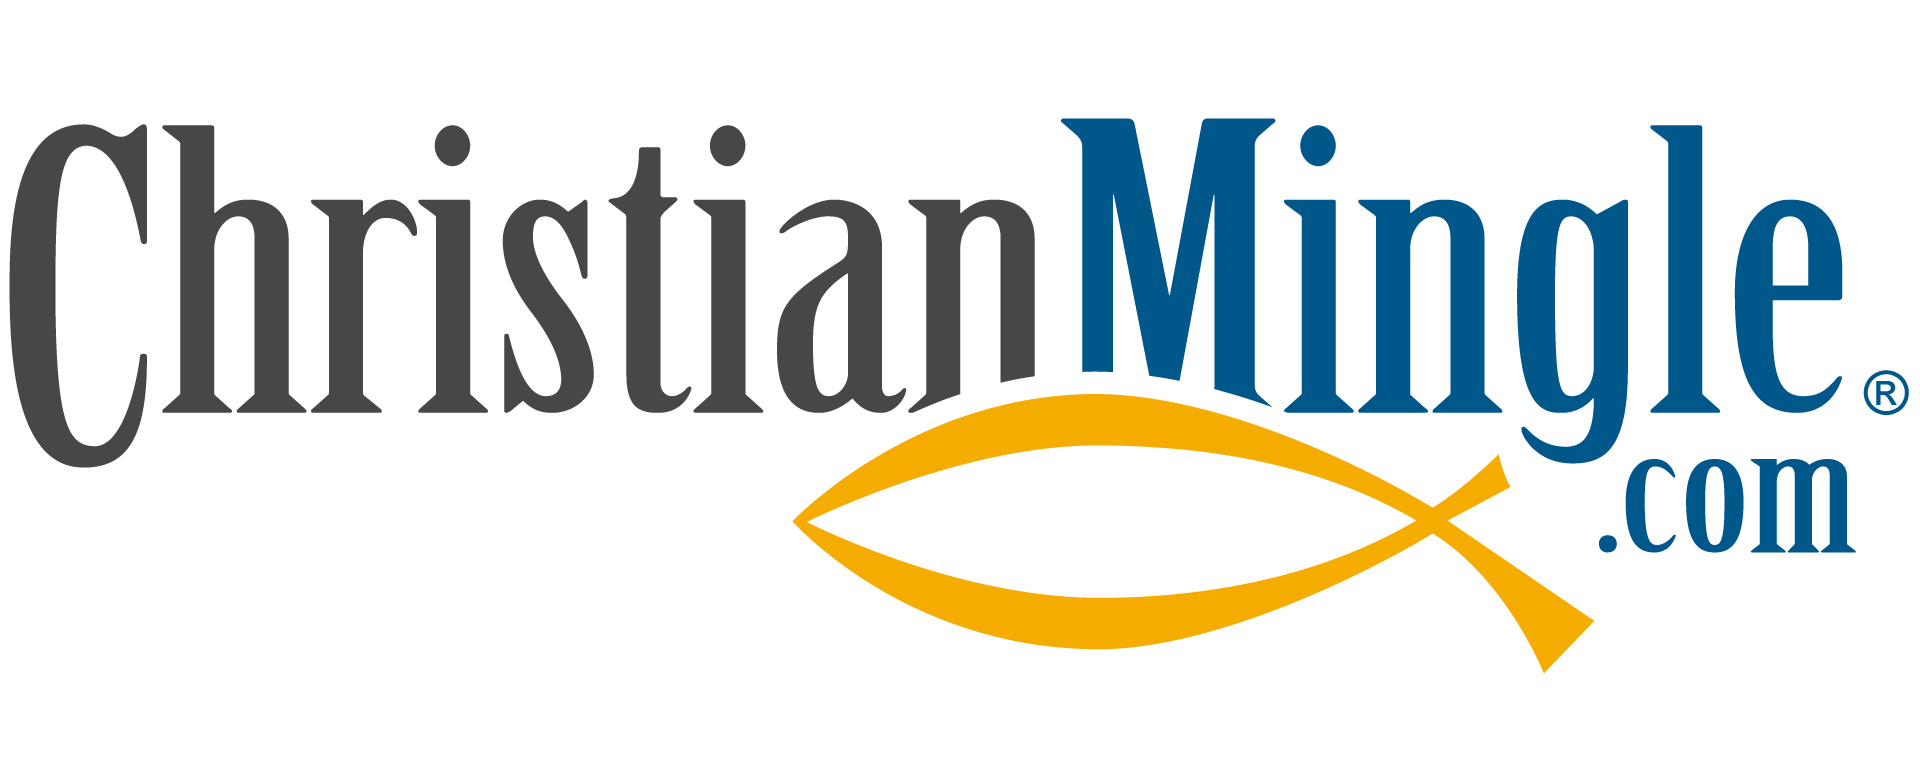 christian mingle dating websites World's best 100% free christian dating site meet thousands of christian singles in your area with mingle2's free christian personal ads and chat rooms our network of christian men and women is the perfect place to make christian friends or find a christian boyfriend or girlfriend.